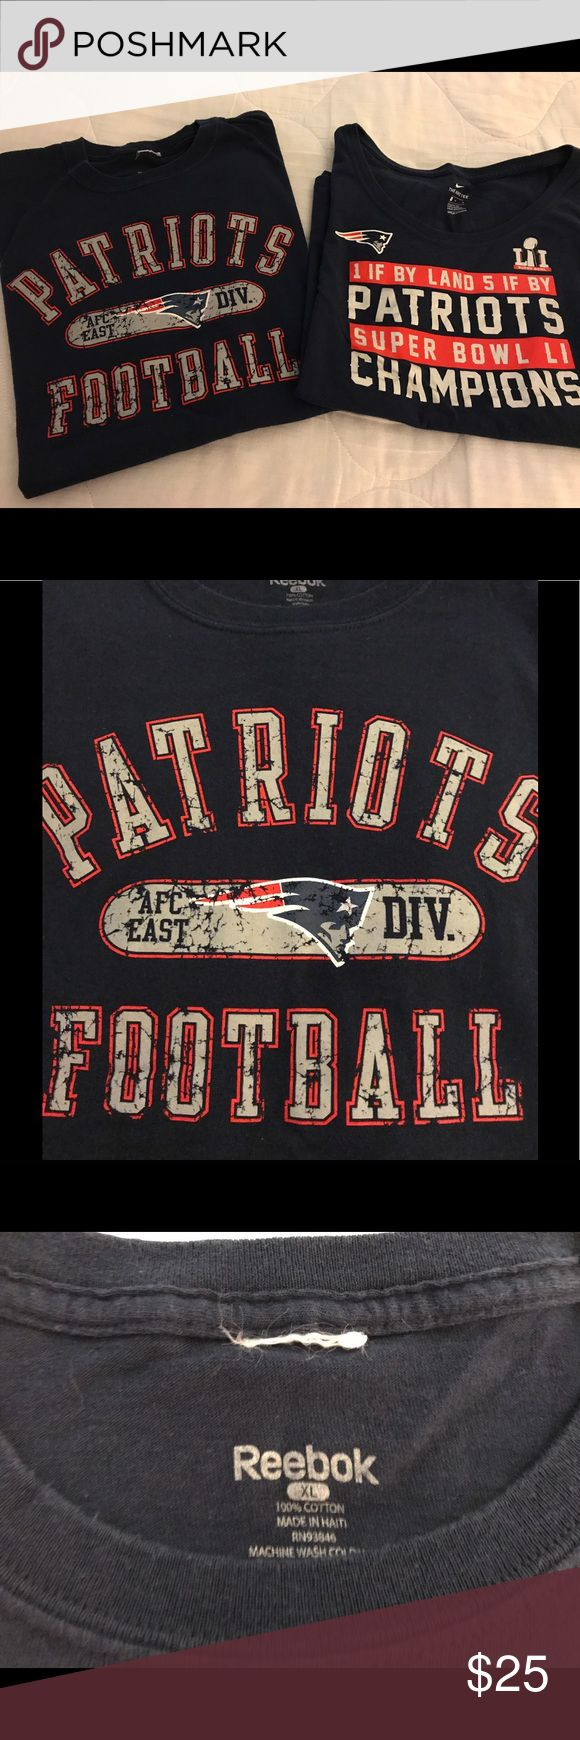 Bundled Ladies New England Patriots t-shirts Gently worn short sleeve t-shirts, one Reebok size xl, one Nike size L NFL Tops Tees - Short Sleeve